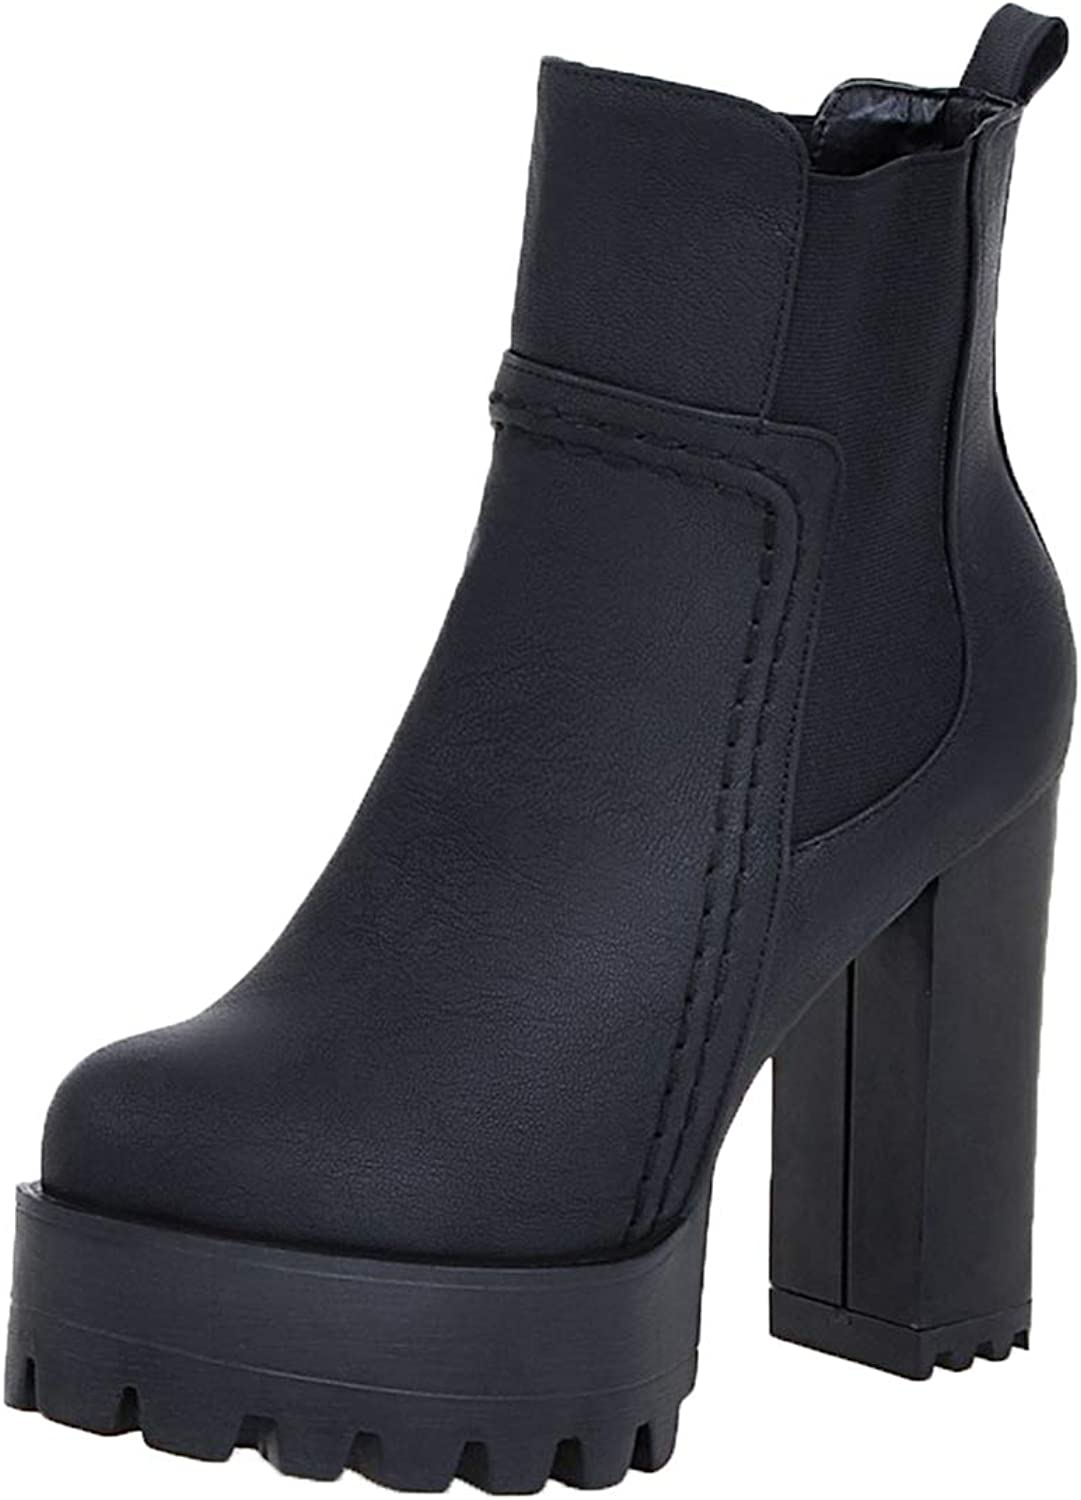 Vitalo Womens Chunky High Heel Platform Chelsea Ankle Boots Pull On Booties